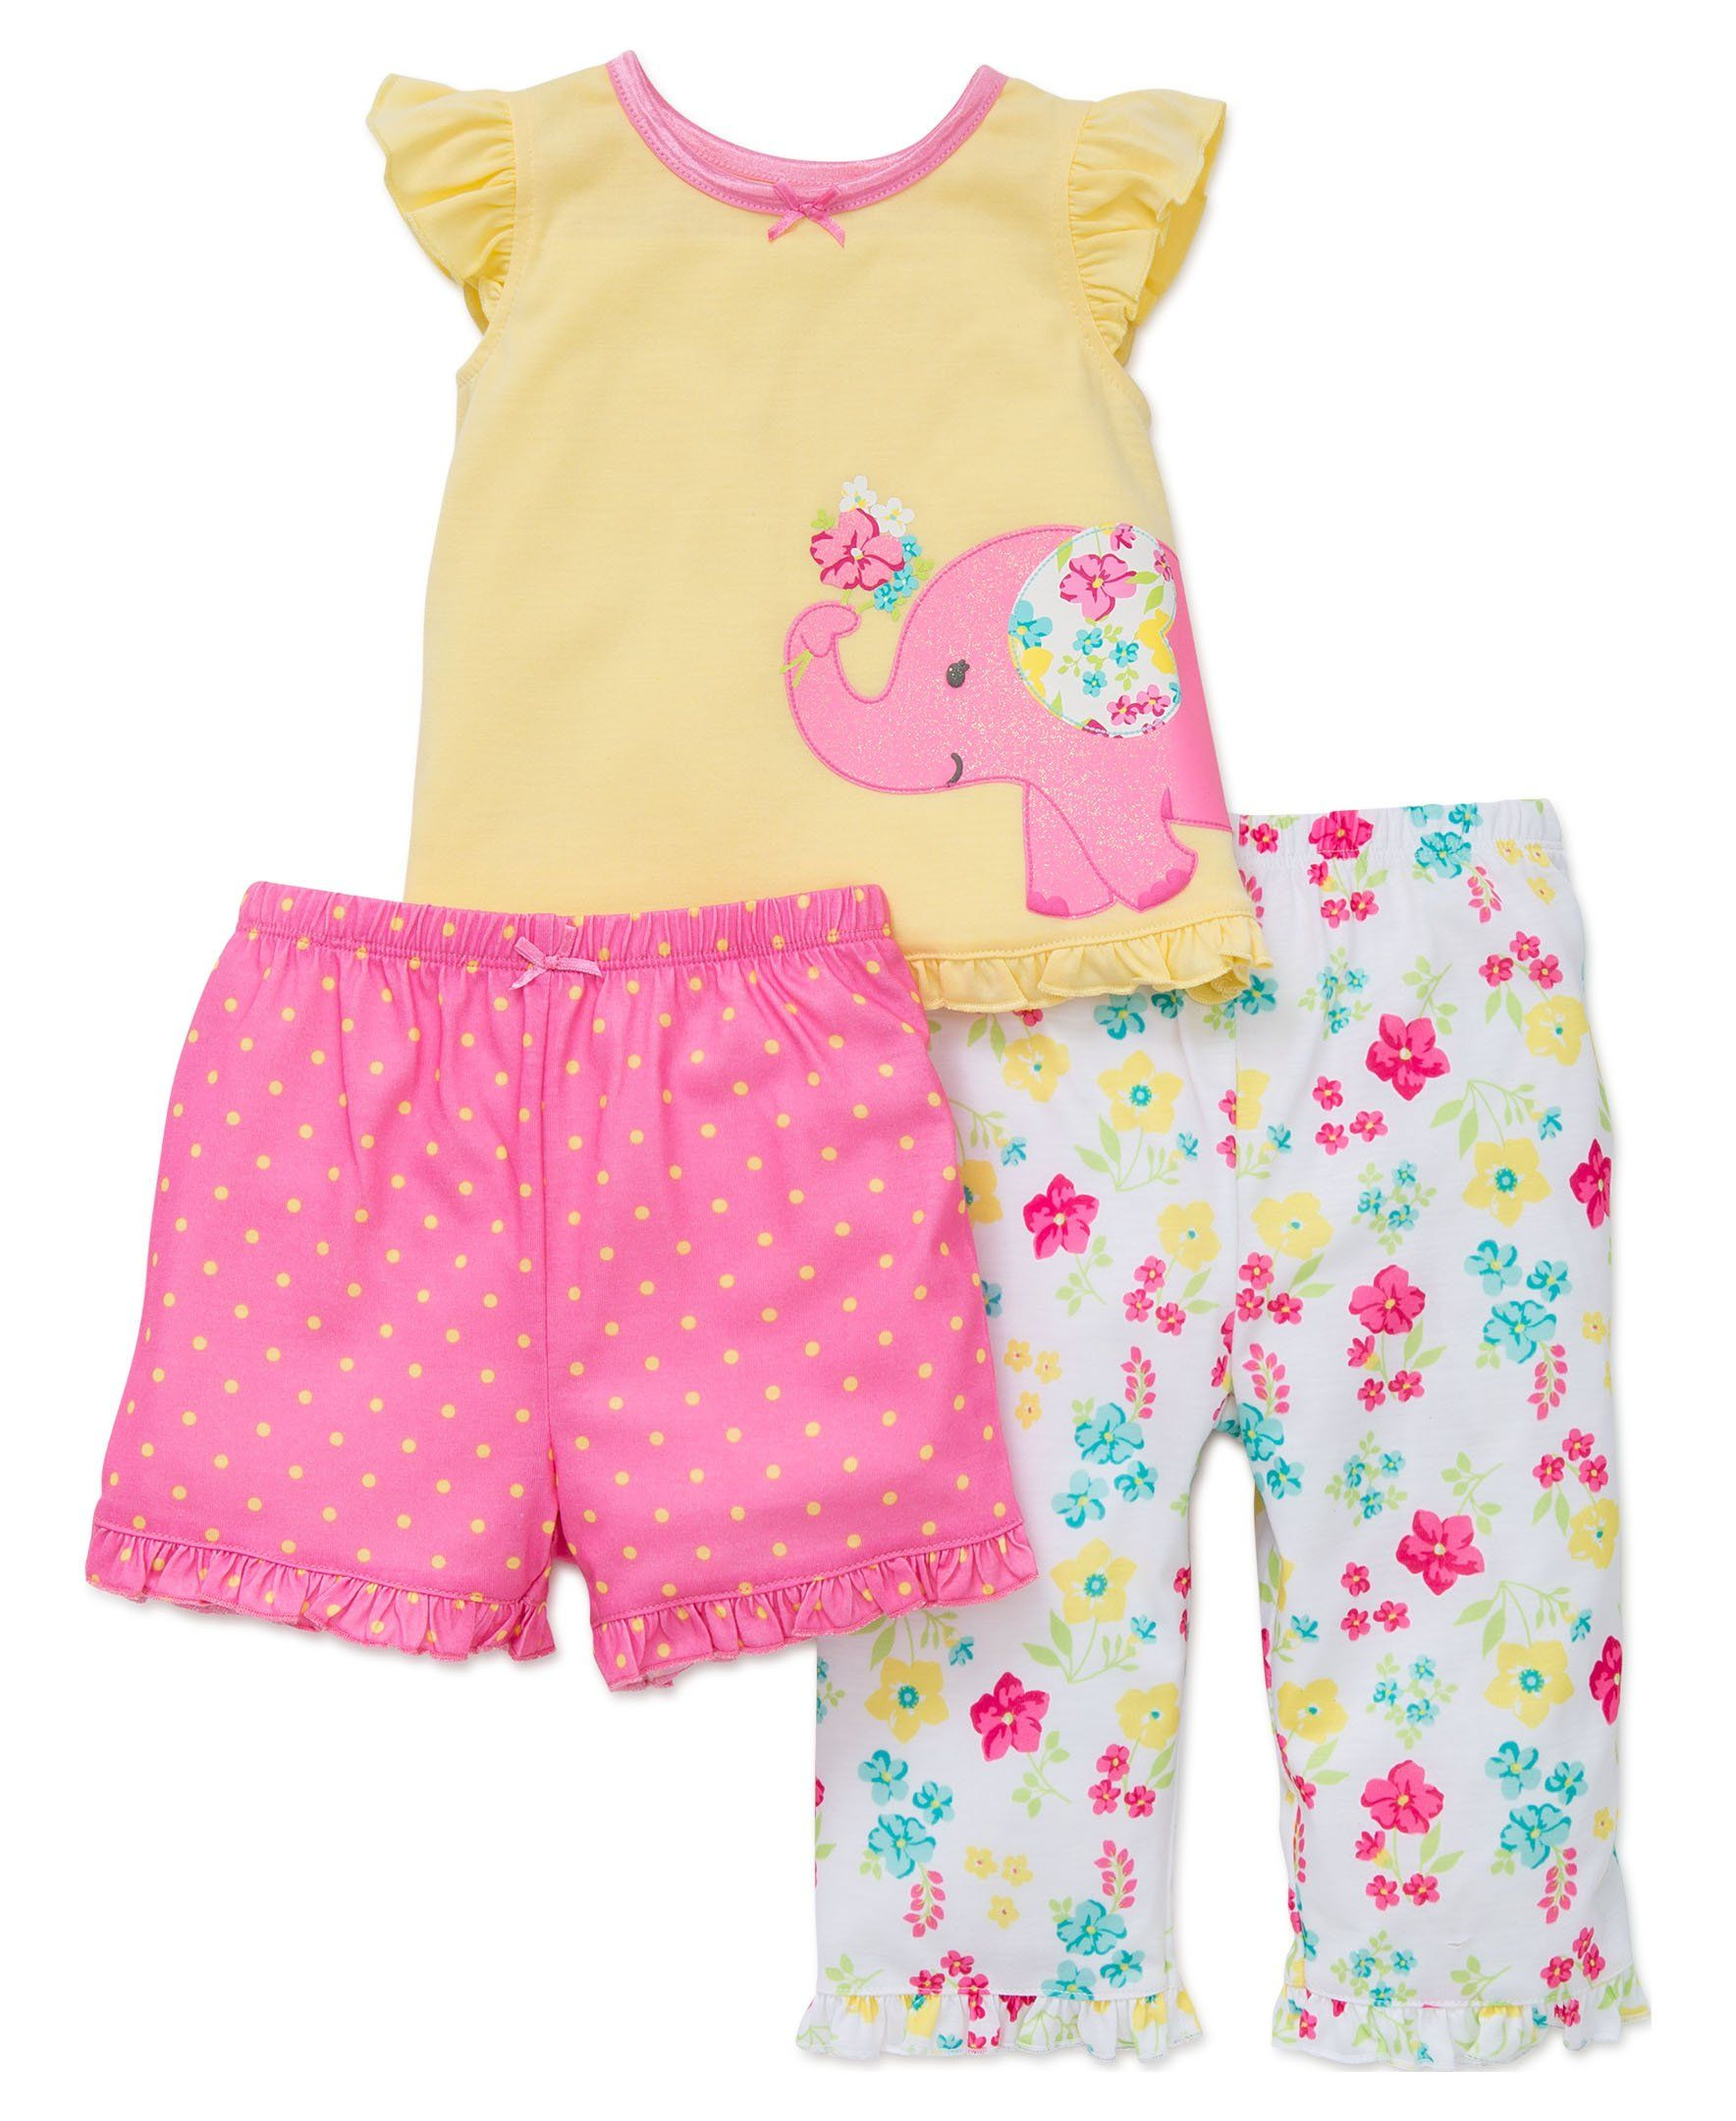 Little Me Baby Girls 3 Piece Pajama Set Floral 18 Months